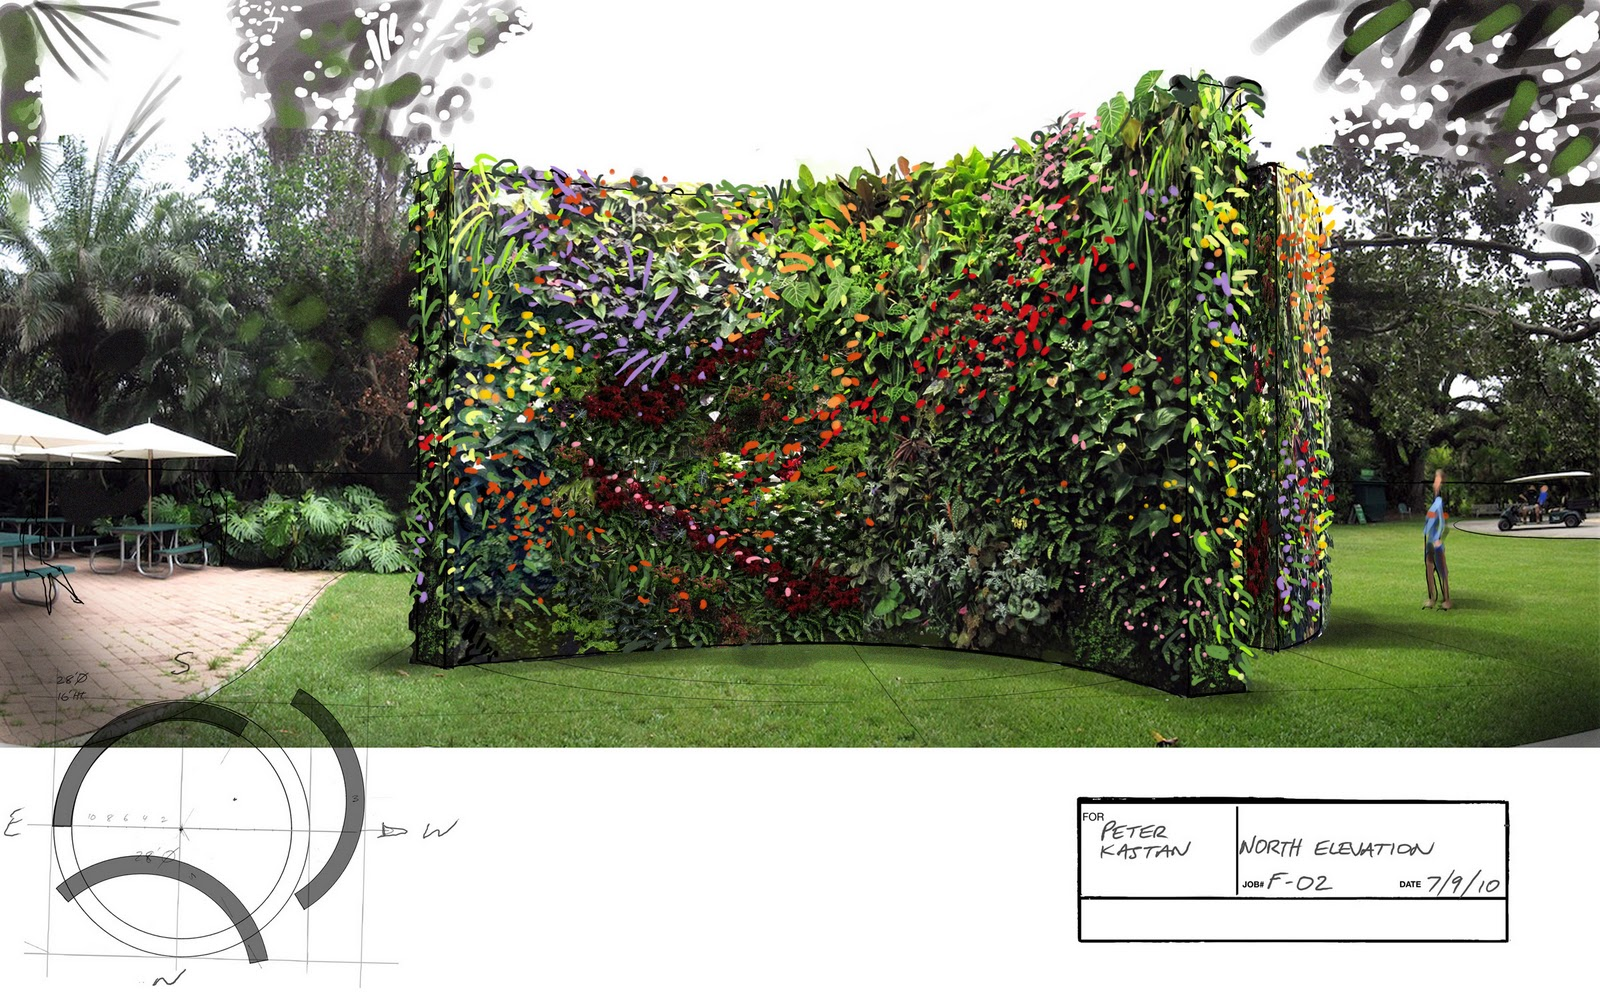 Free Standing Hydroponic Plant Wall Proposal For Park Or